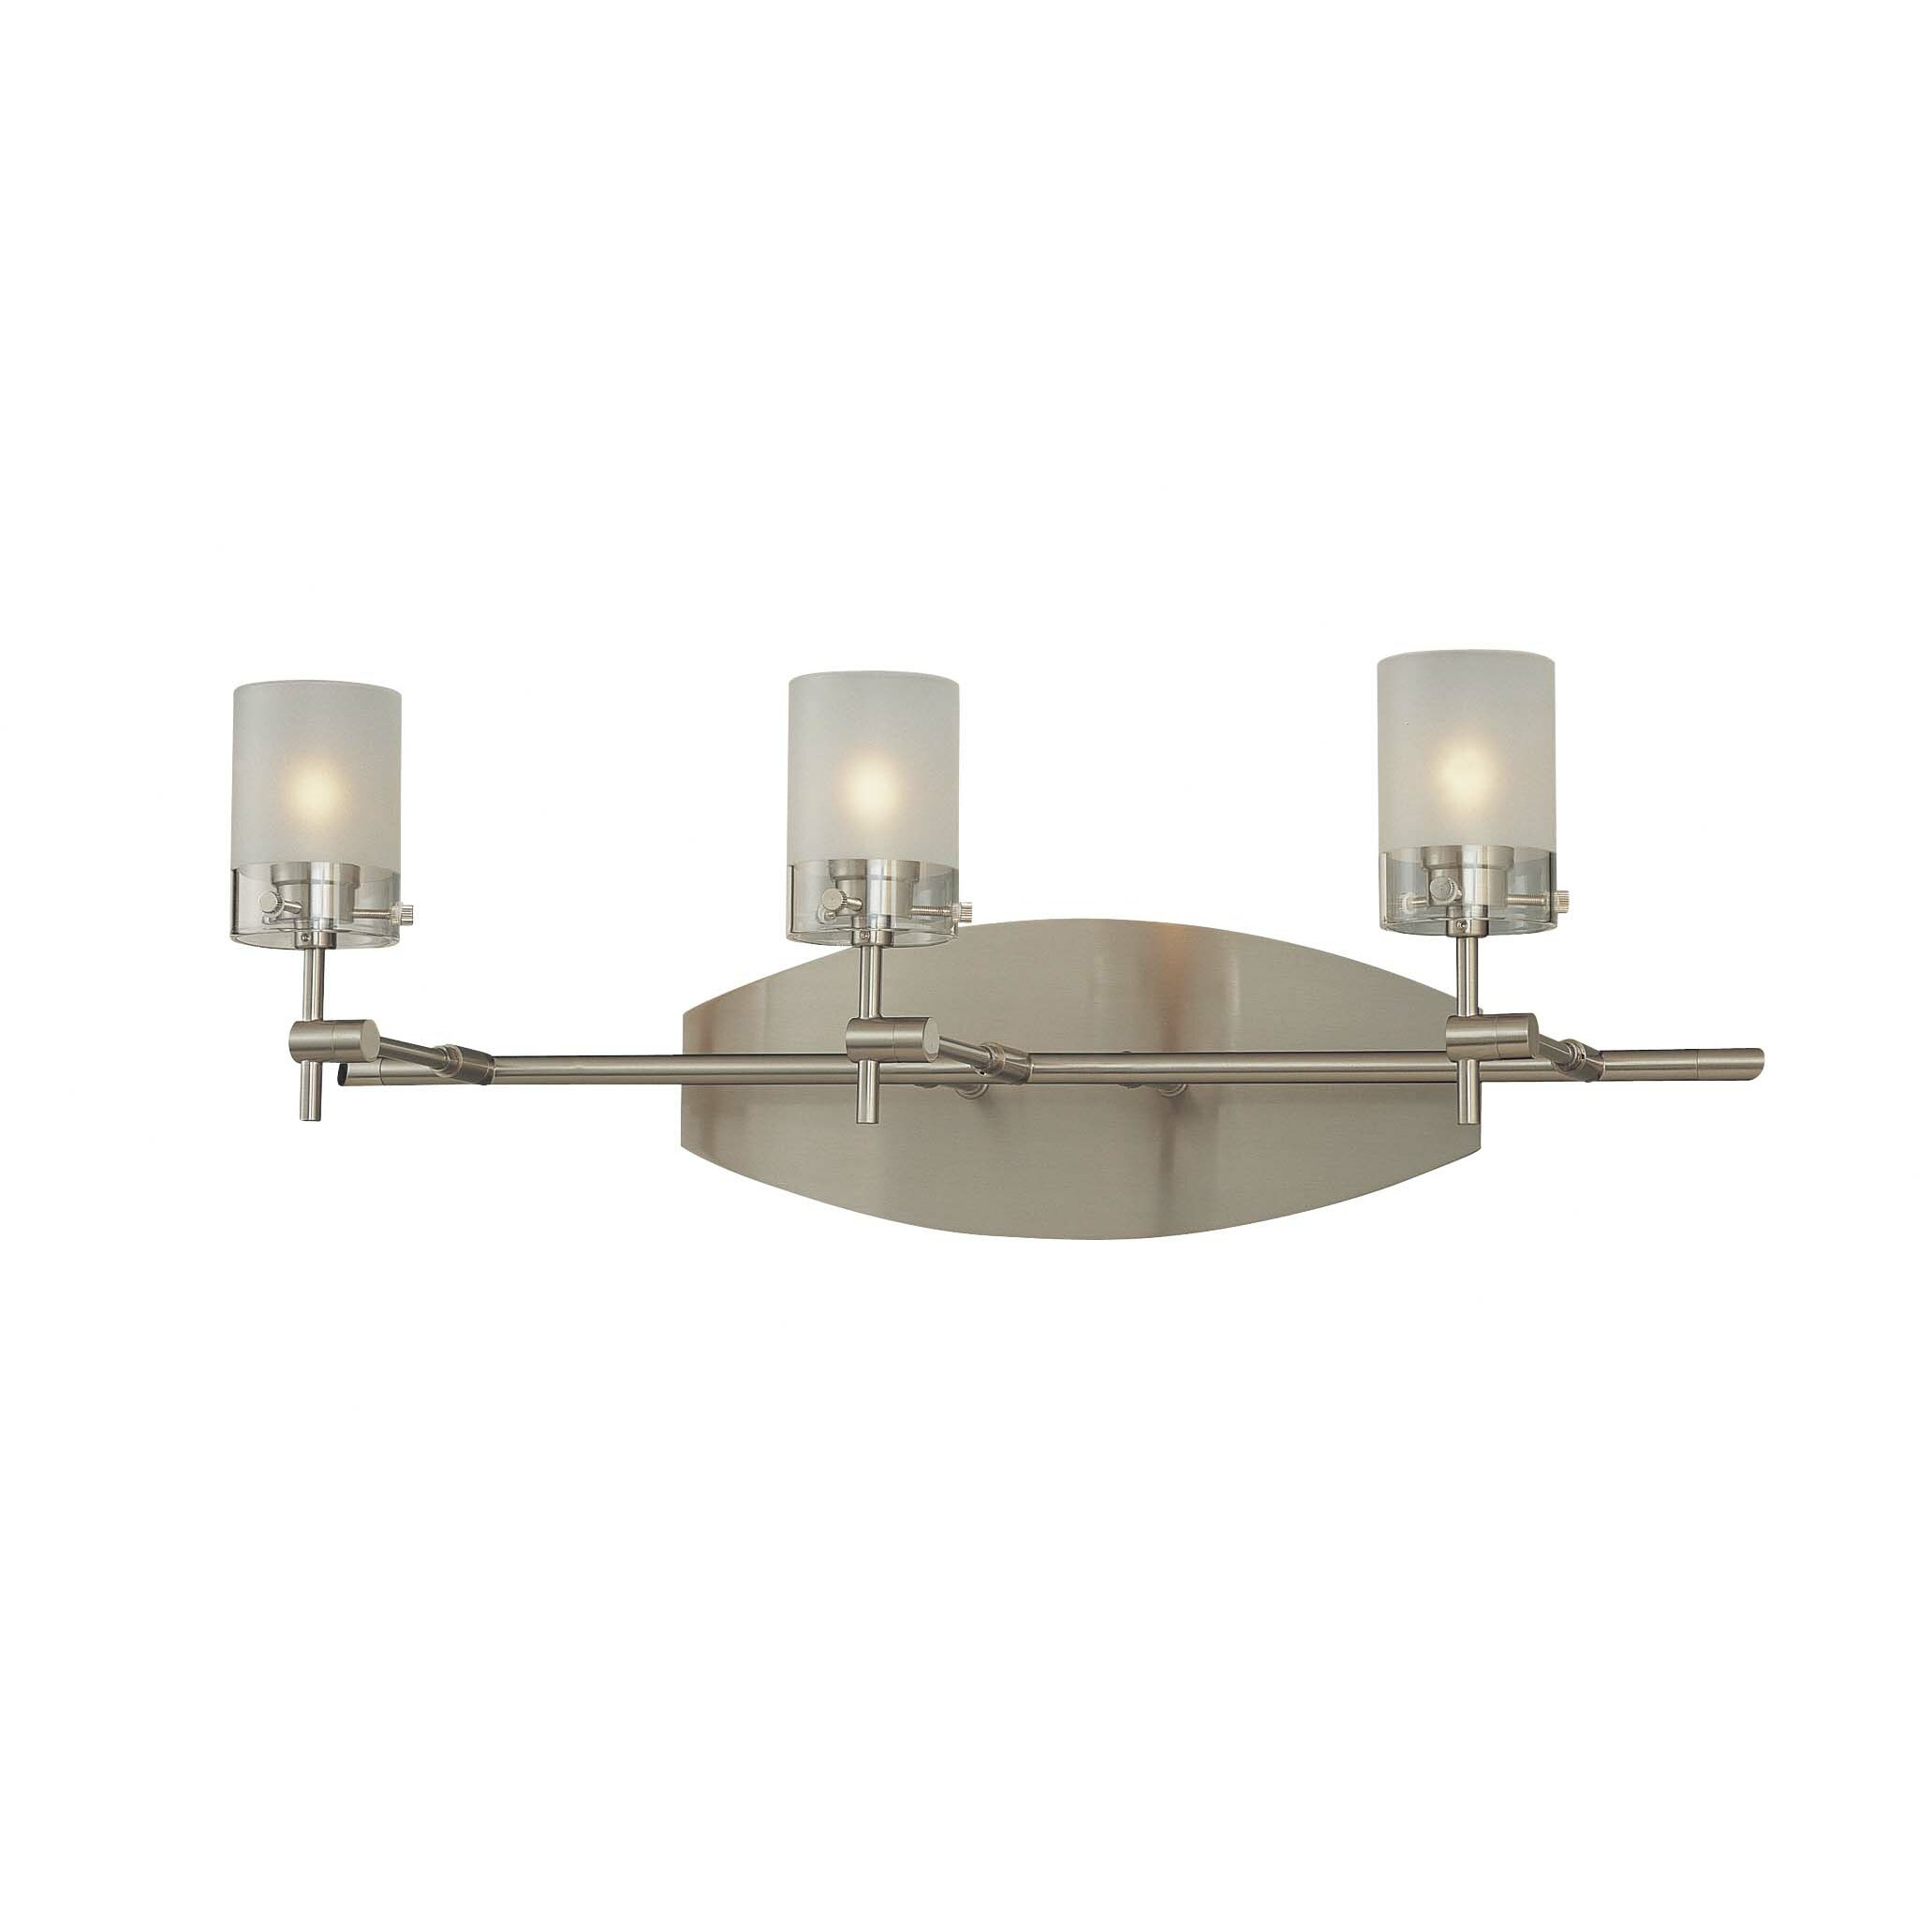 george kovacs bathroom lighting george kovacs 3 light vanity light amp reviews wayfair 18454